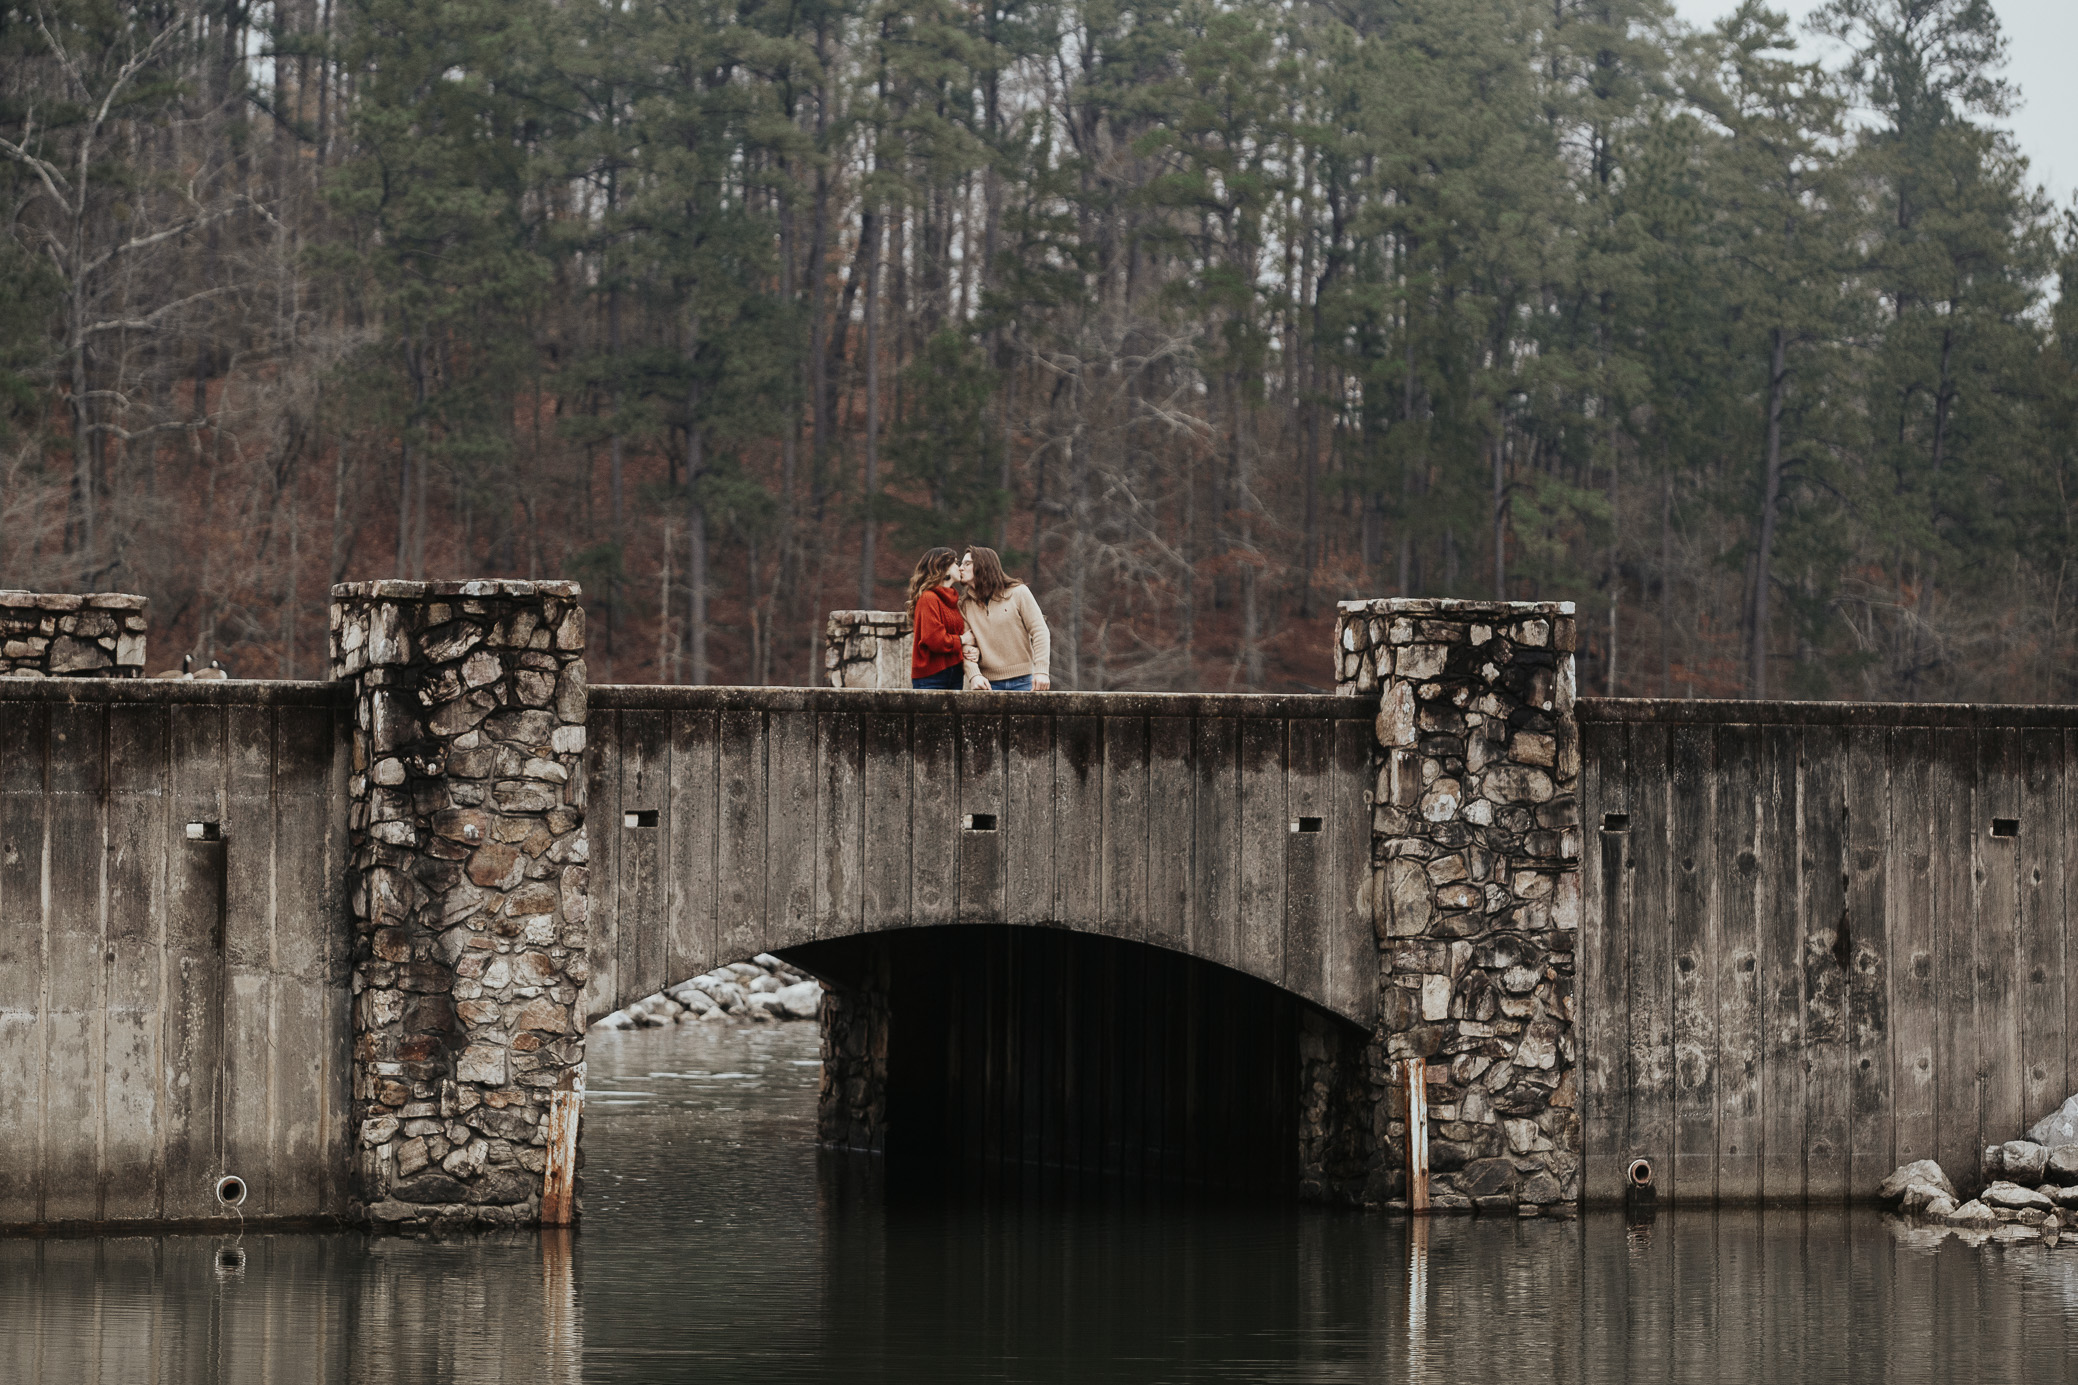 Oak Mountain Alabama engagement photography in Pelham, Alabama by David A. Smith of DSmithImages Wedding Photography, Portraits, and Events, a wedding photographer in Birmingham, Alabama